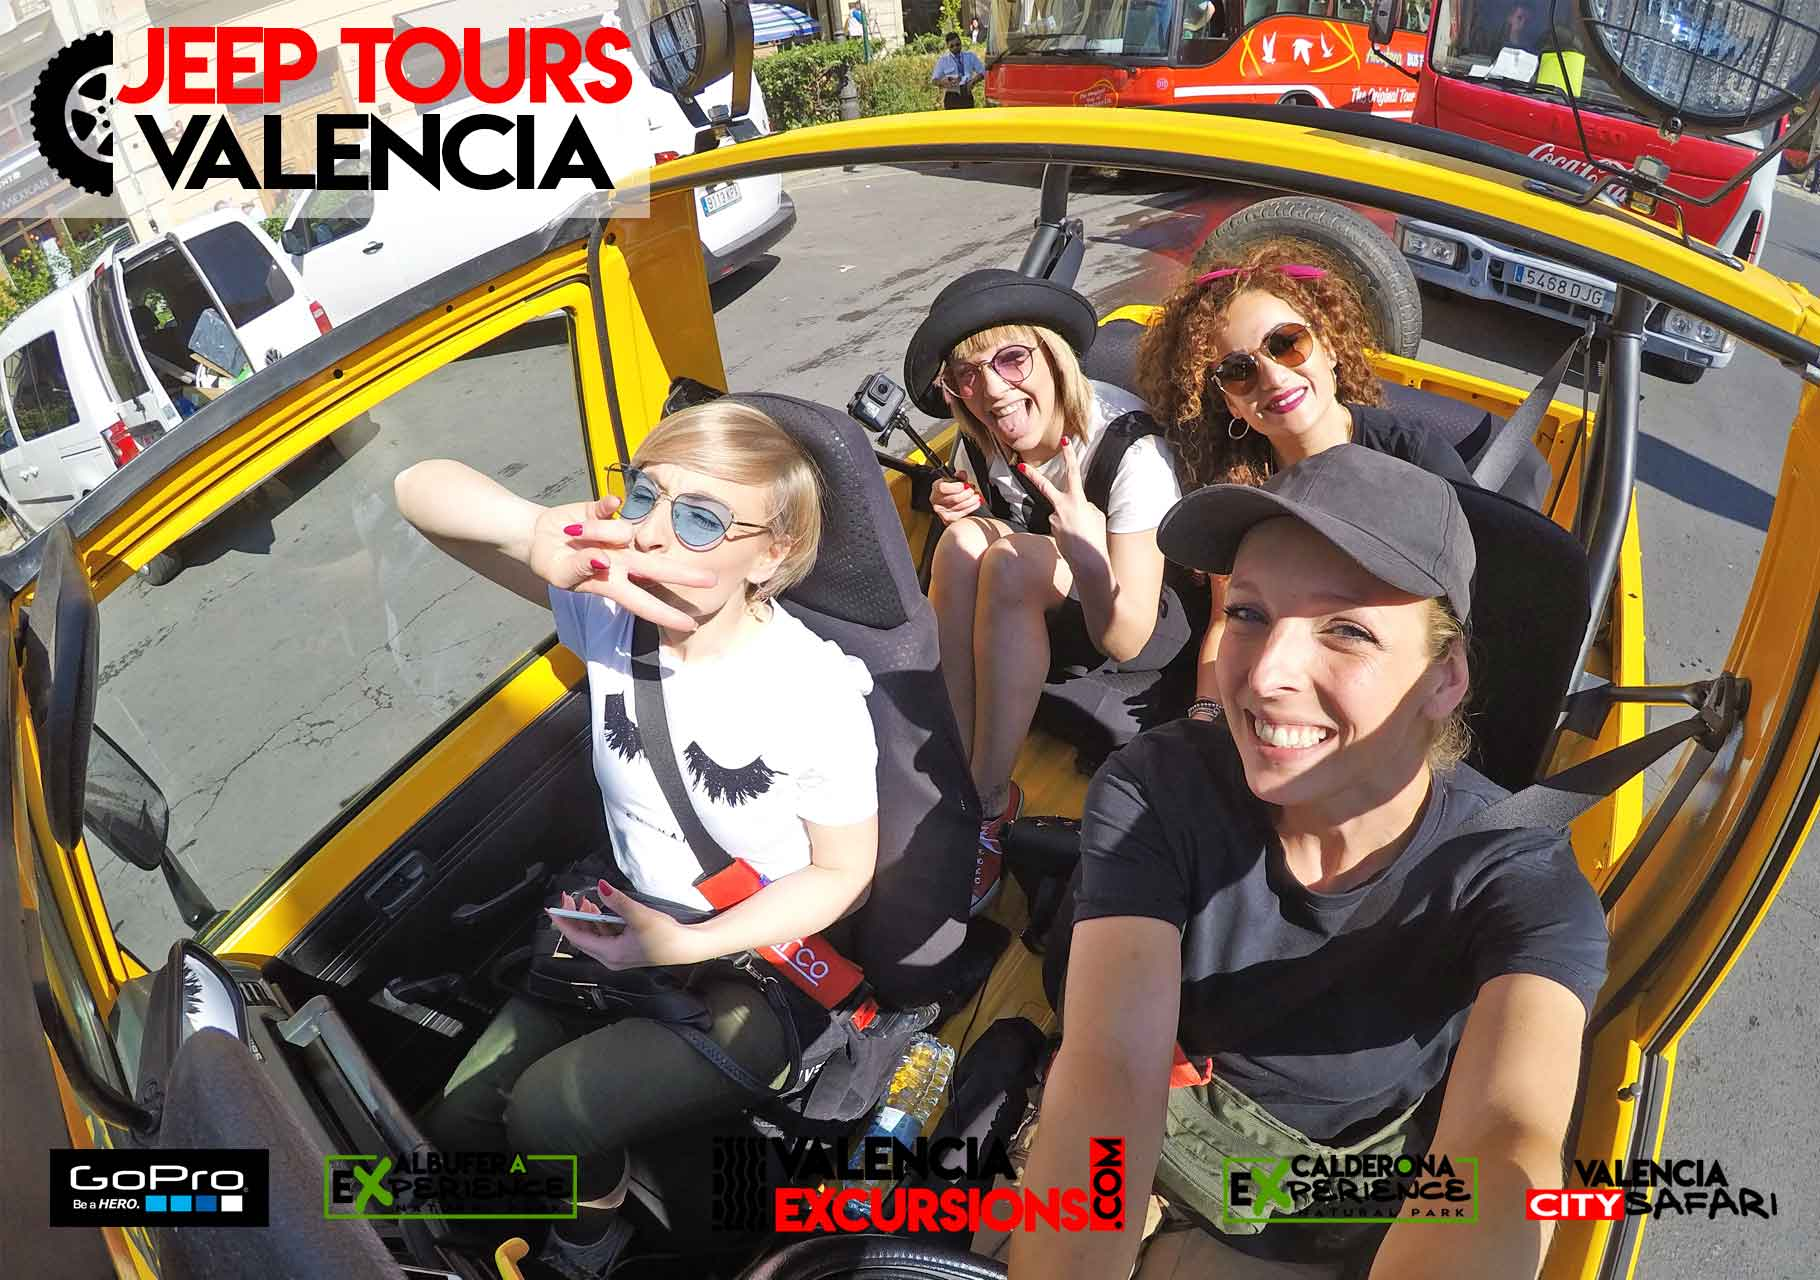 Coolest tours in Valencia